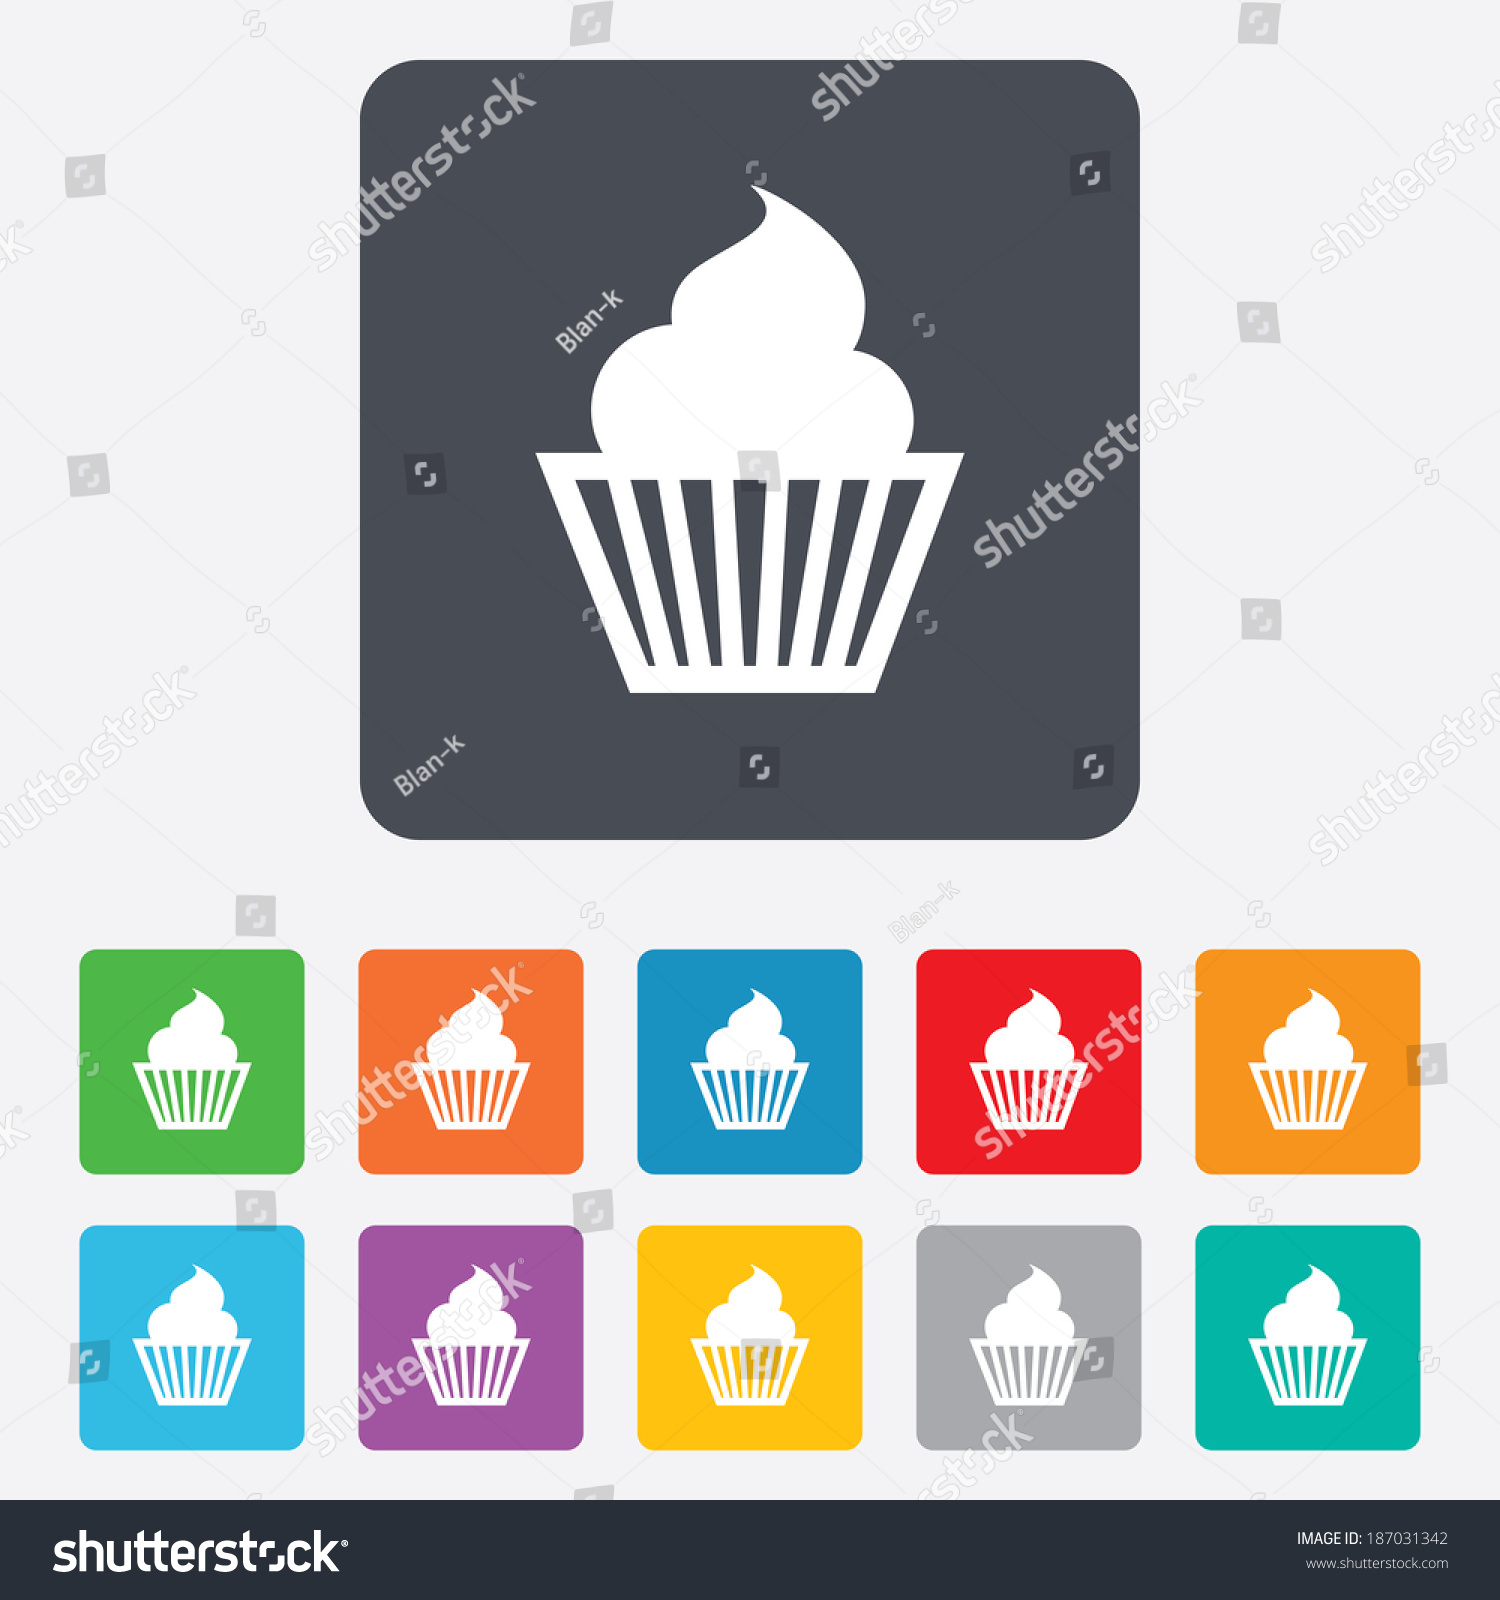 Muffin Sign Icon Cupcake Symbol Rounded Stock Illustration 187031342